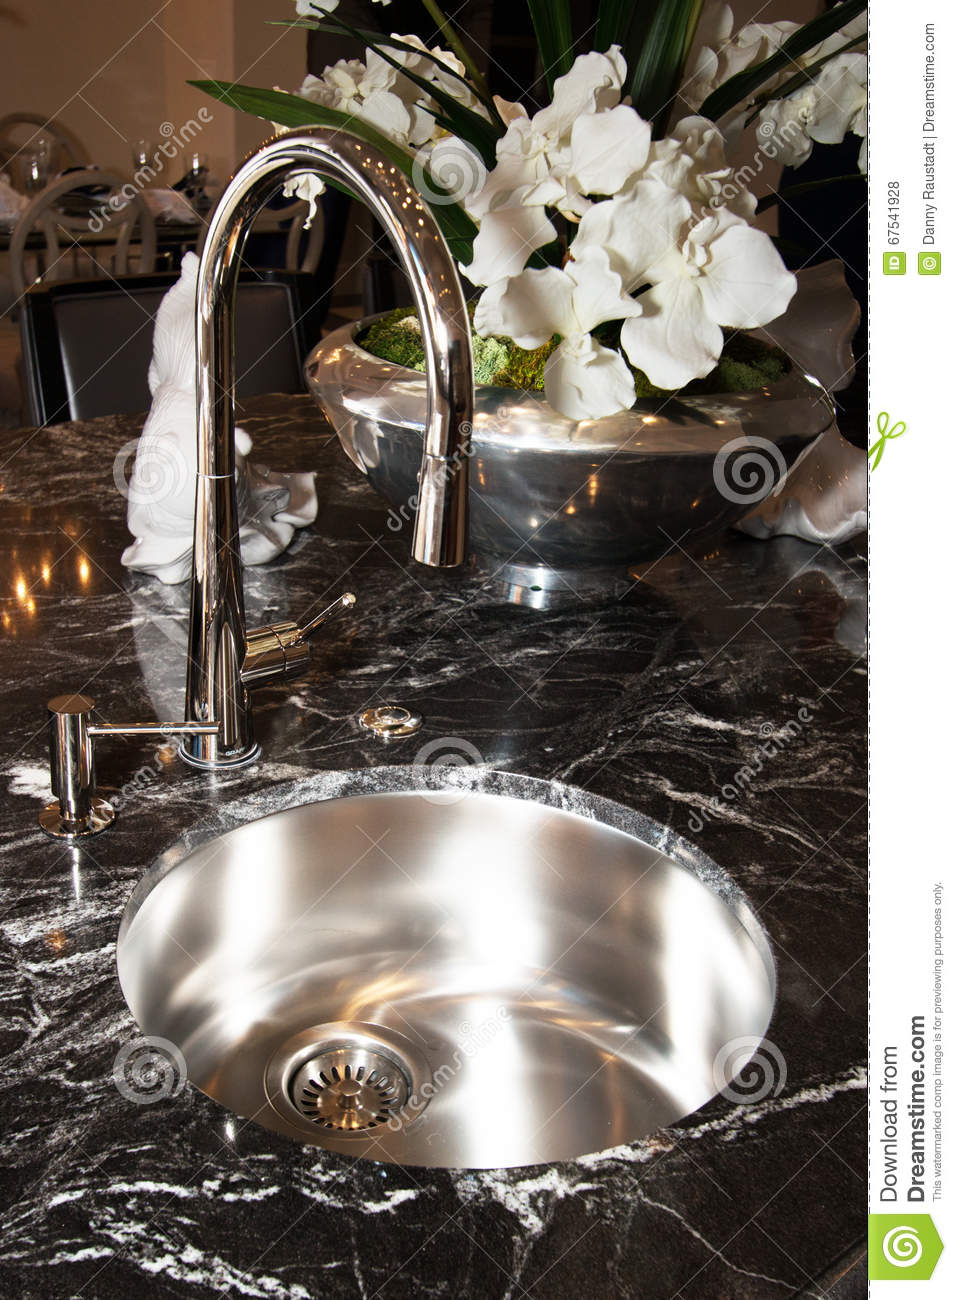 Stainless Steel Sink And Faucet Stock Photo - Image of soap ...